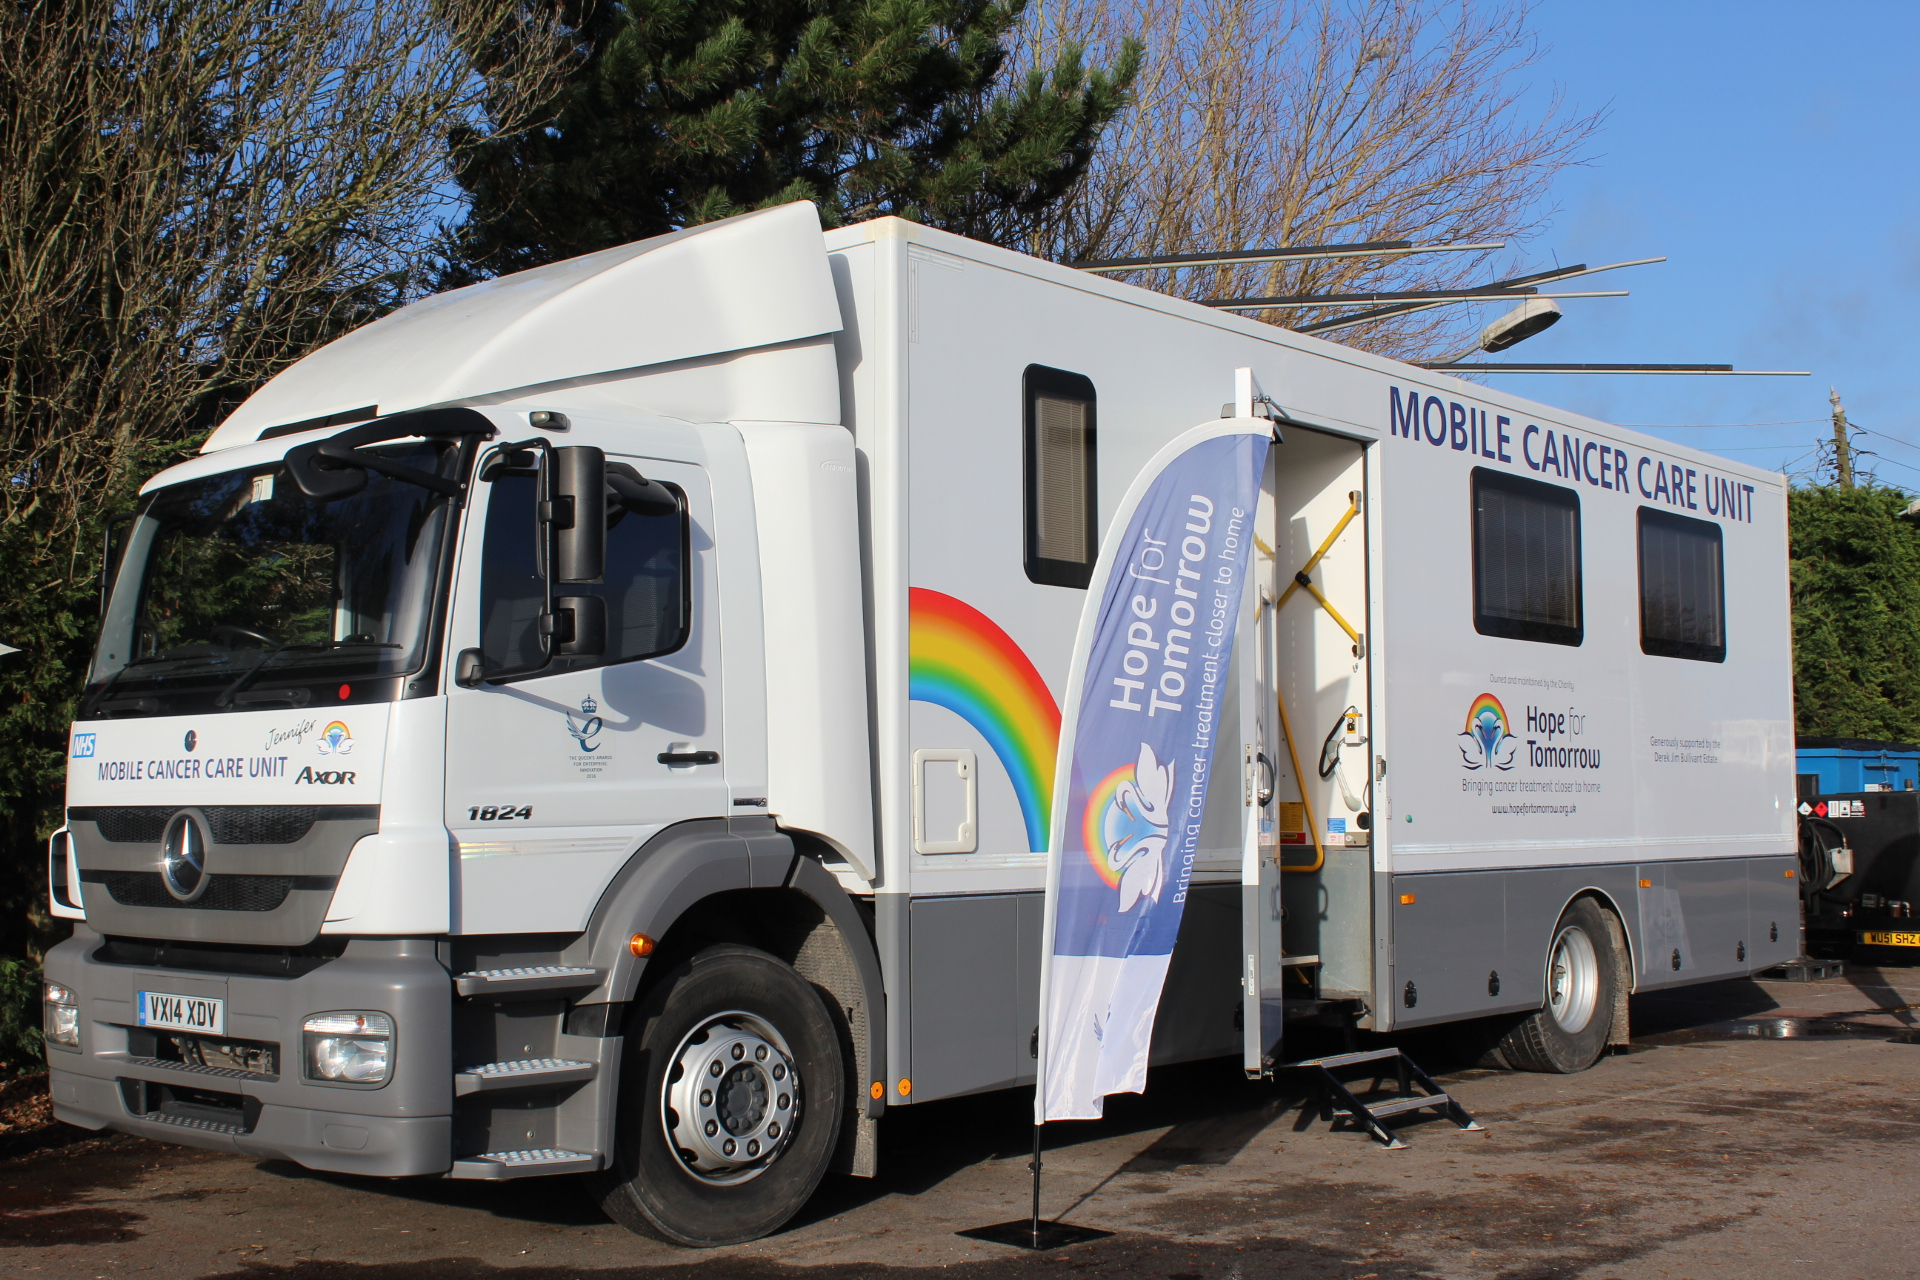 A photo of a Mobile Cancer Care Unit